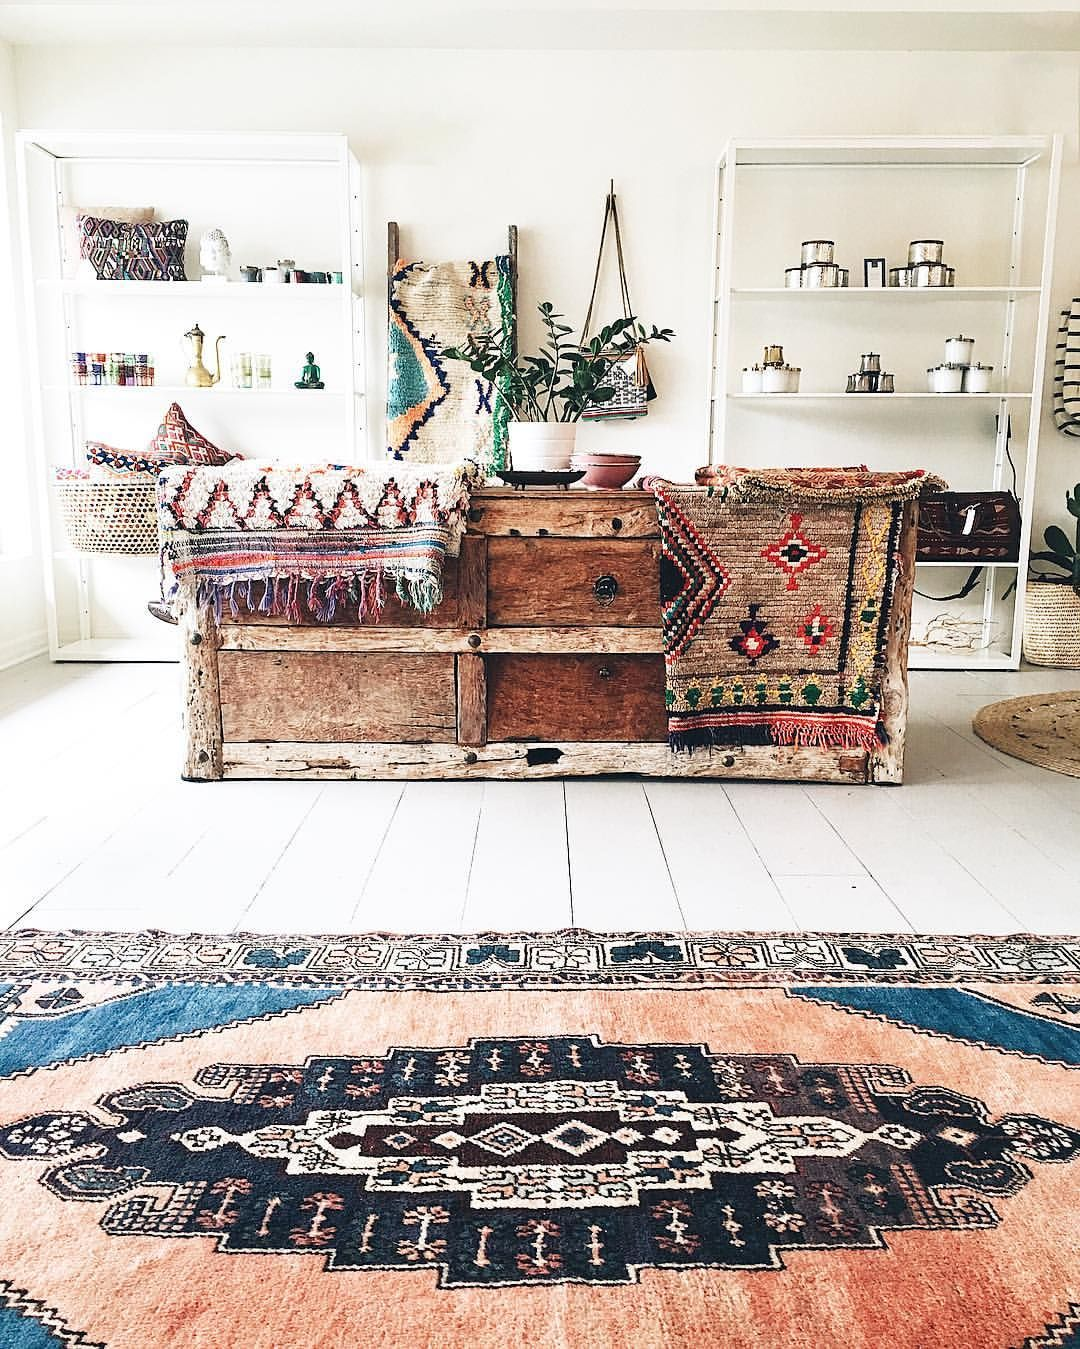 Interior Decor Stores: Green Body + Green Home Retail Store Display Bohemian